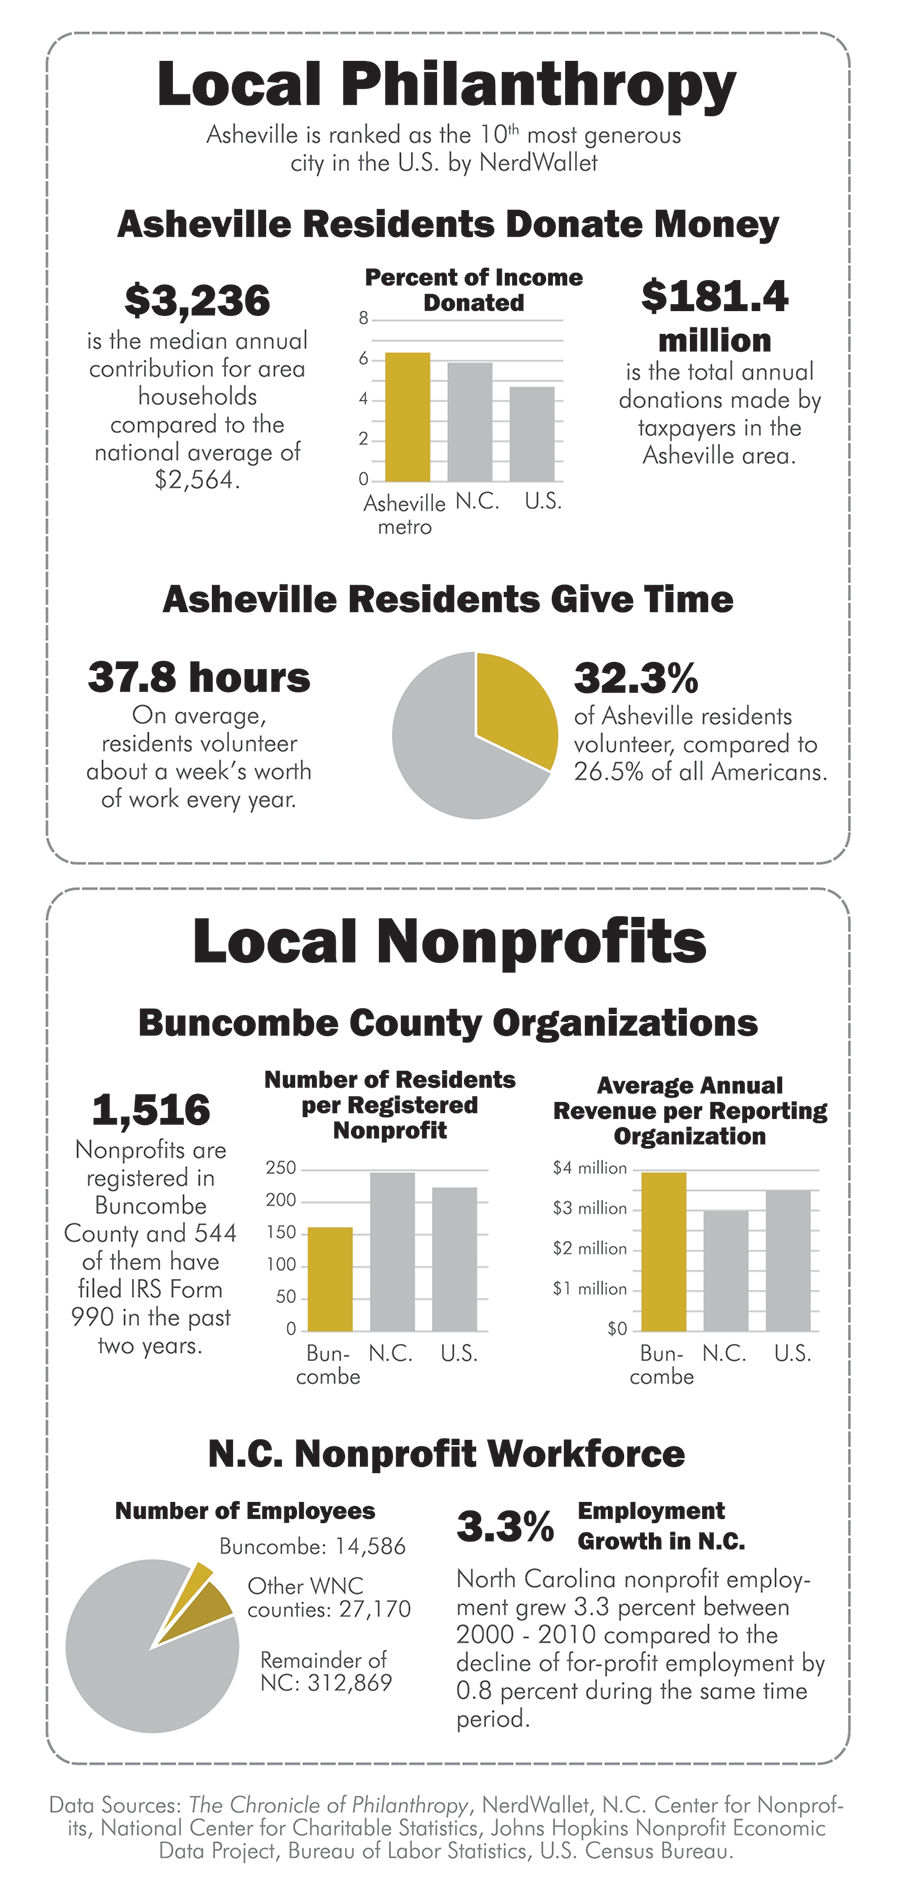 Nonprofits in WNC